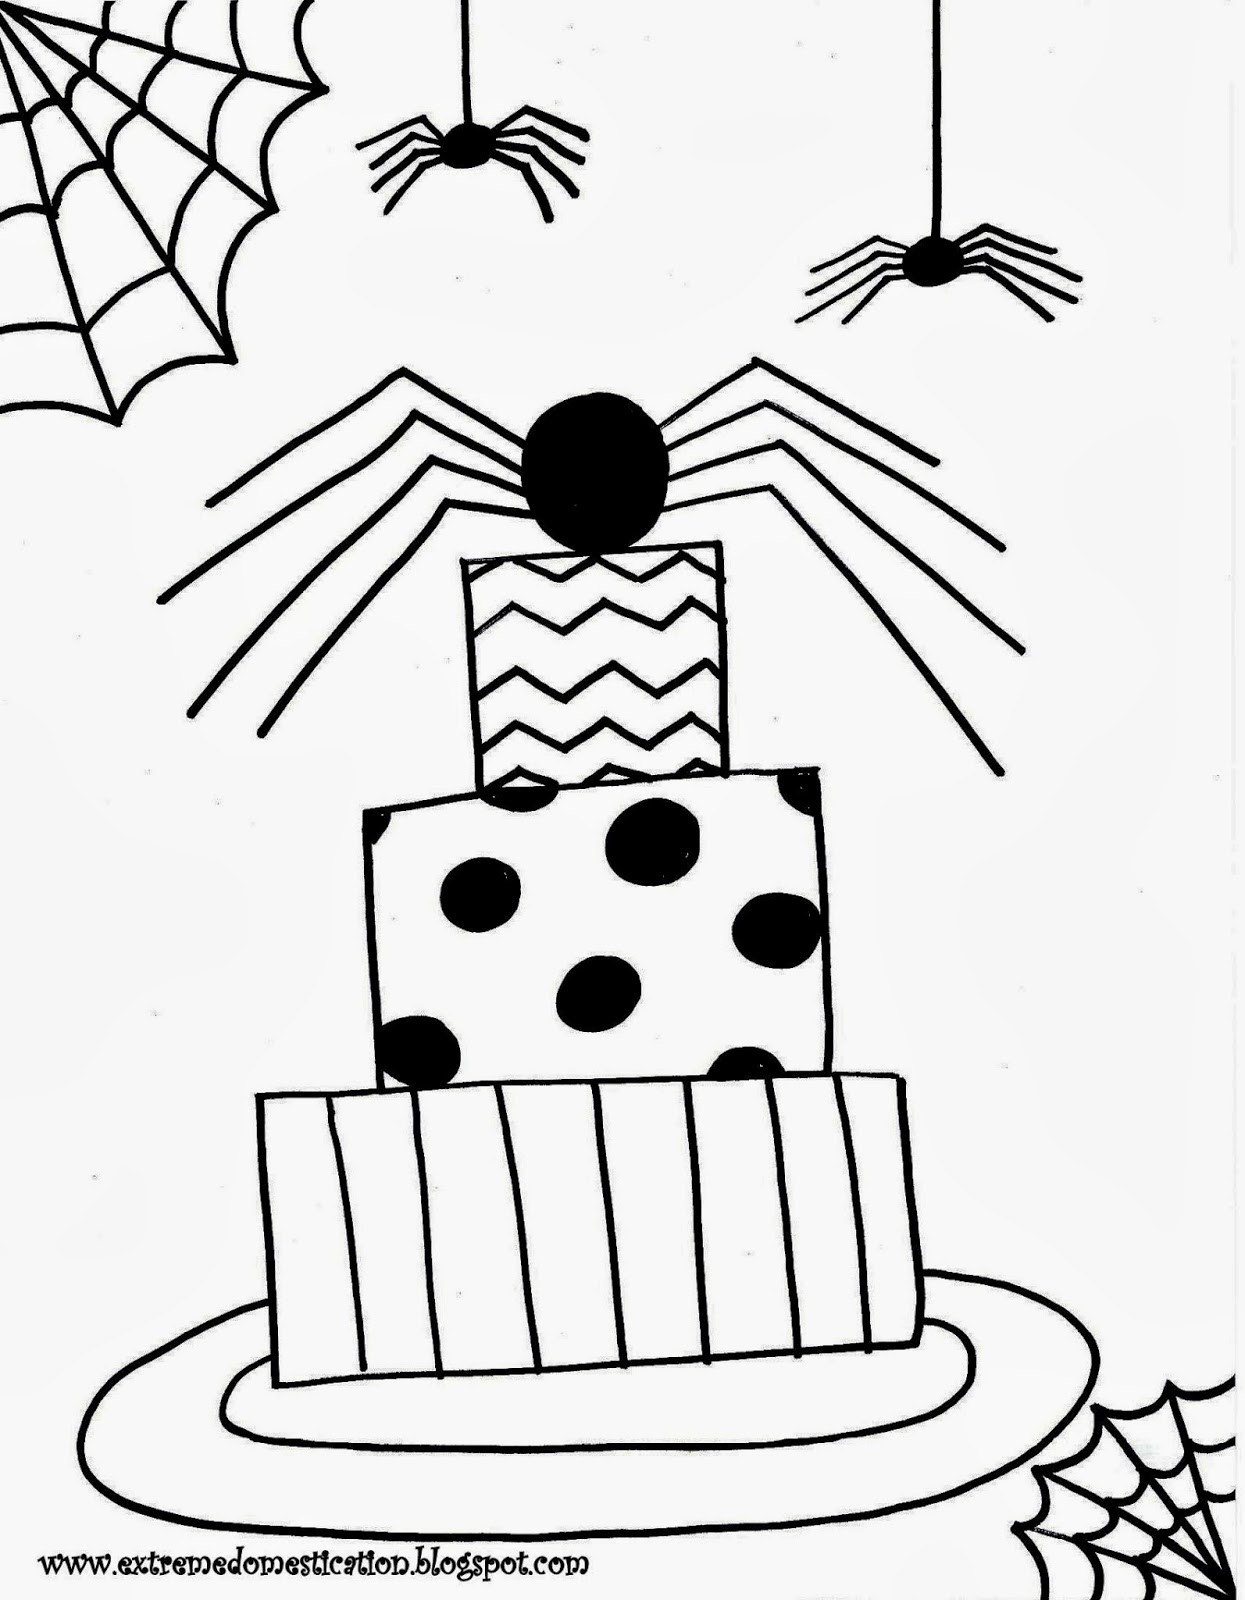 Spider 7 Coloring Cake Ideas and Designs